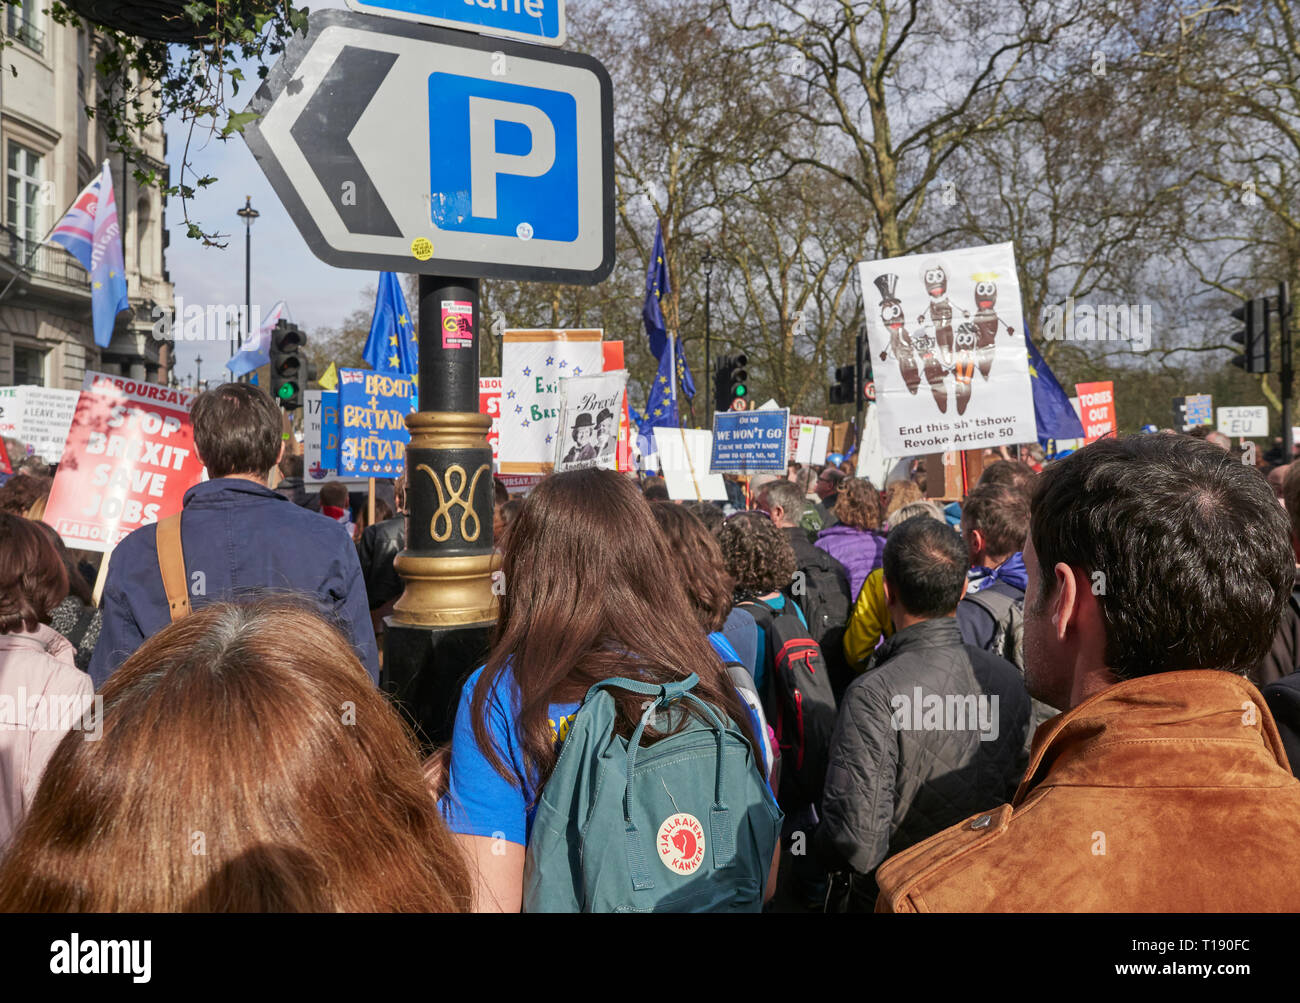 London, England, UK. 23rd March 2019, Anti Brexit Protestors on the Peoples March in London UK. Credit J Walters/Alamy Live News - Stock Image